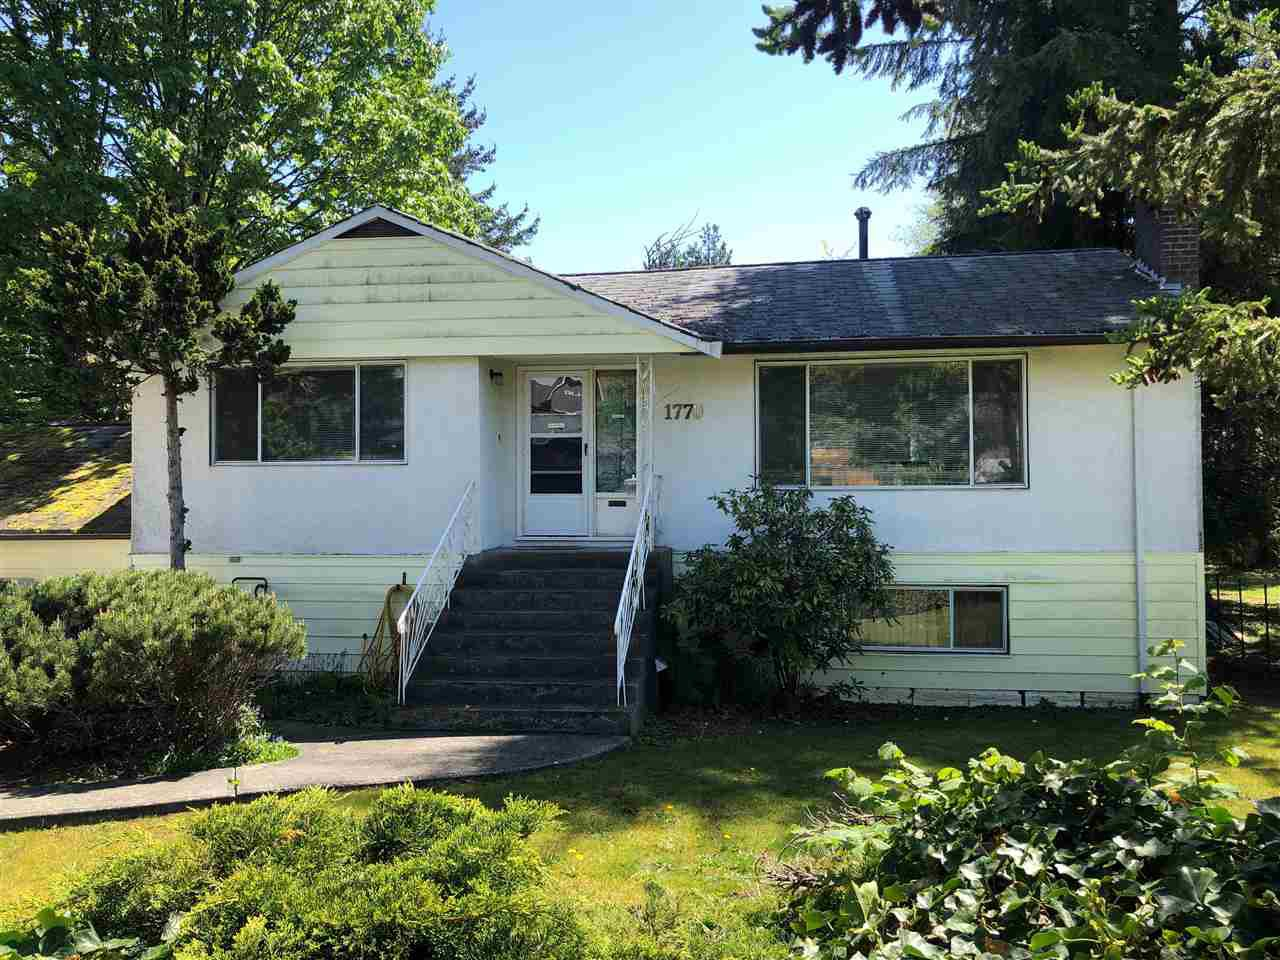 Main Photo: 1770 RIDEAU Avenue in Coquitlam: Central Coquitlam House for sale : MLS®# R2420643